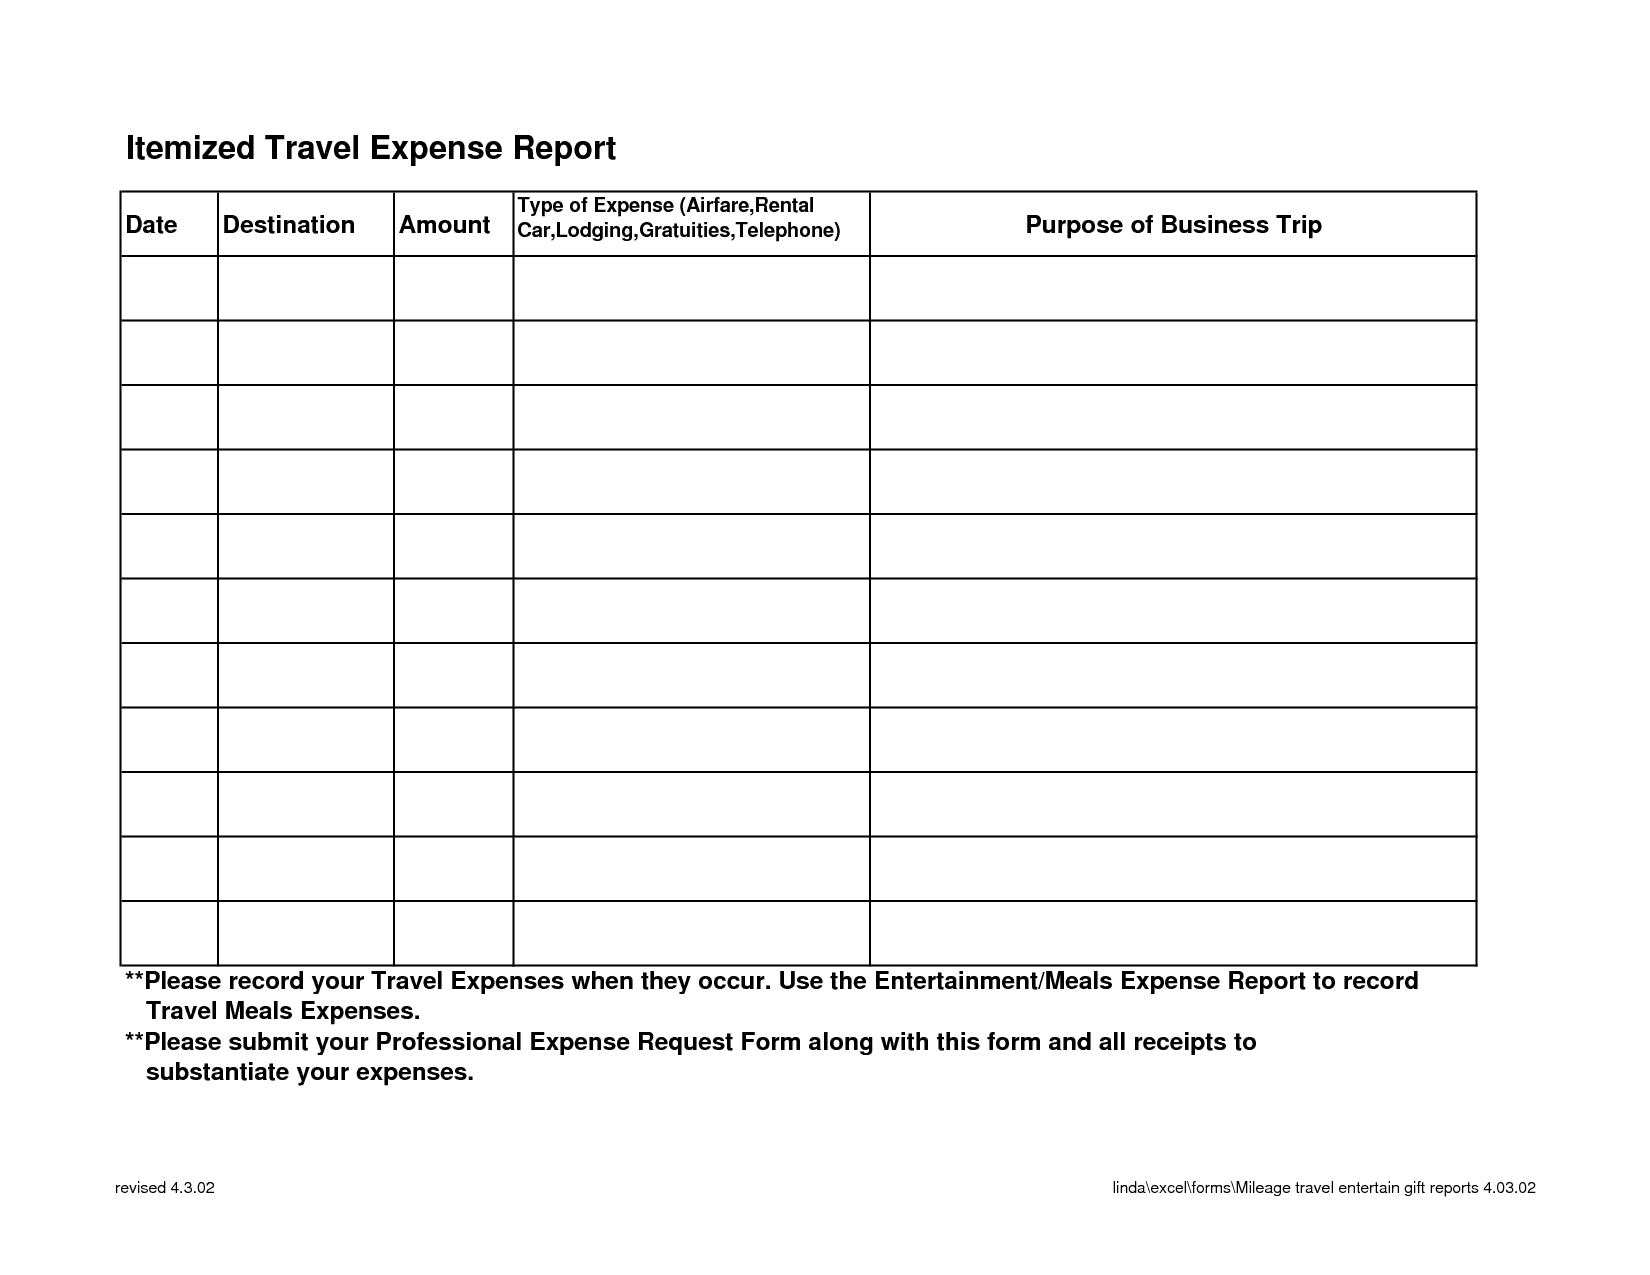 Travel Expense Report Template Excel And Business Expense Report Categories